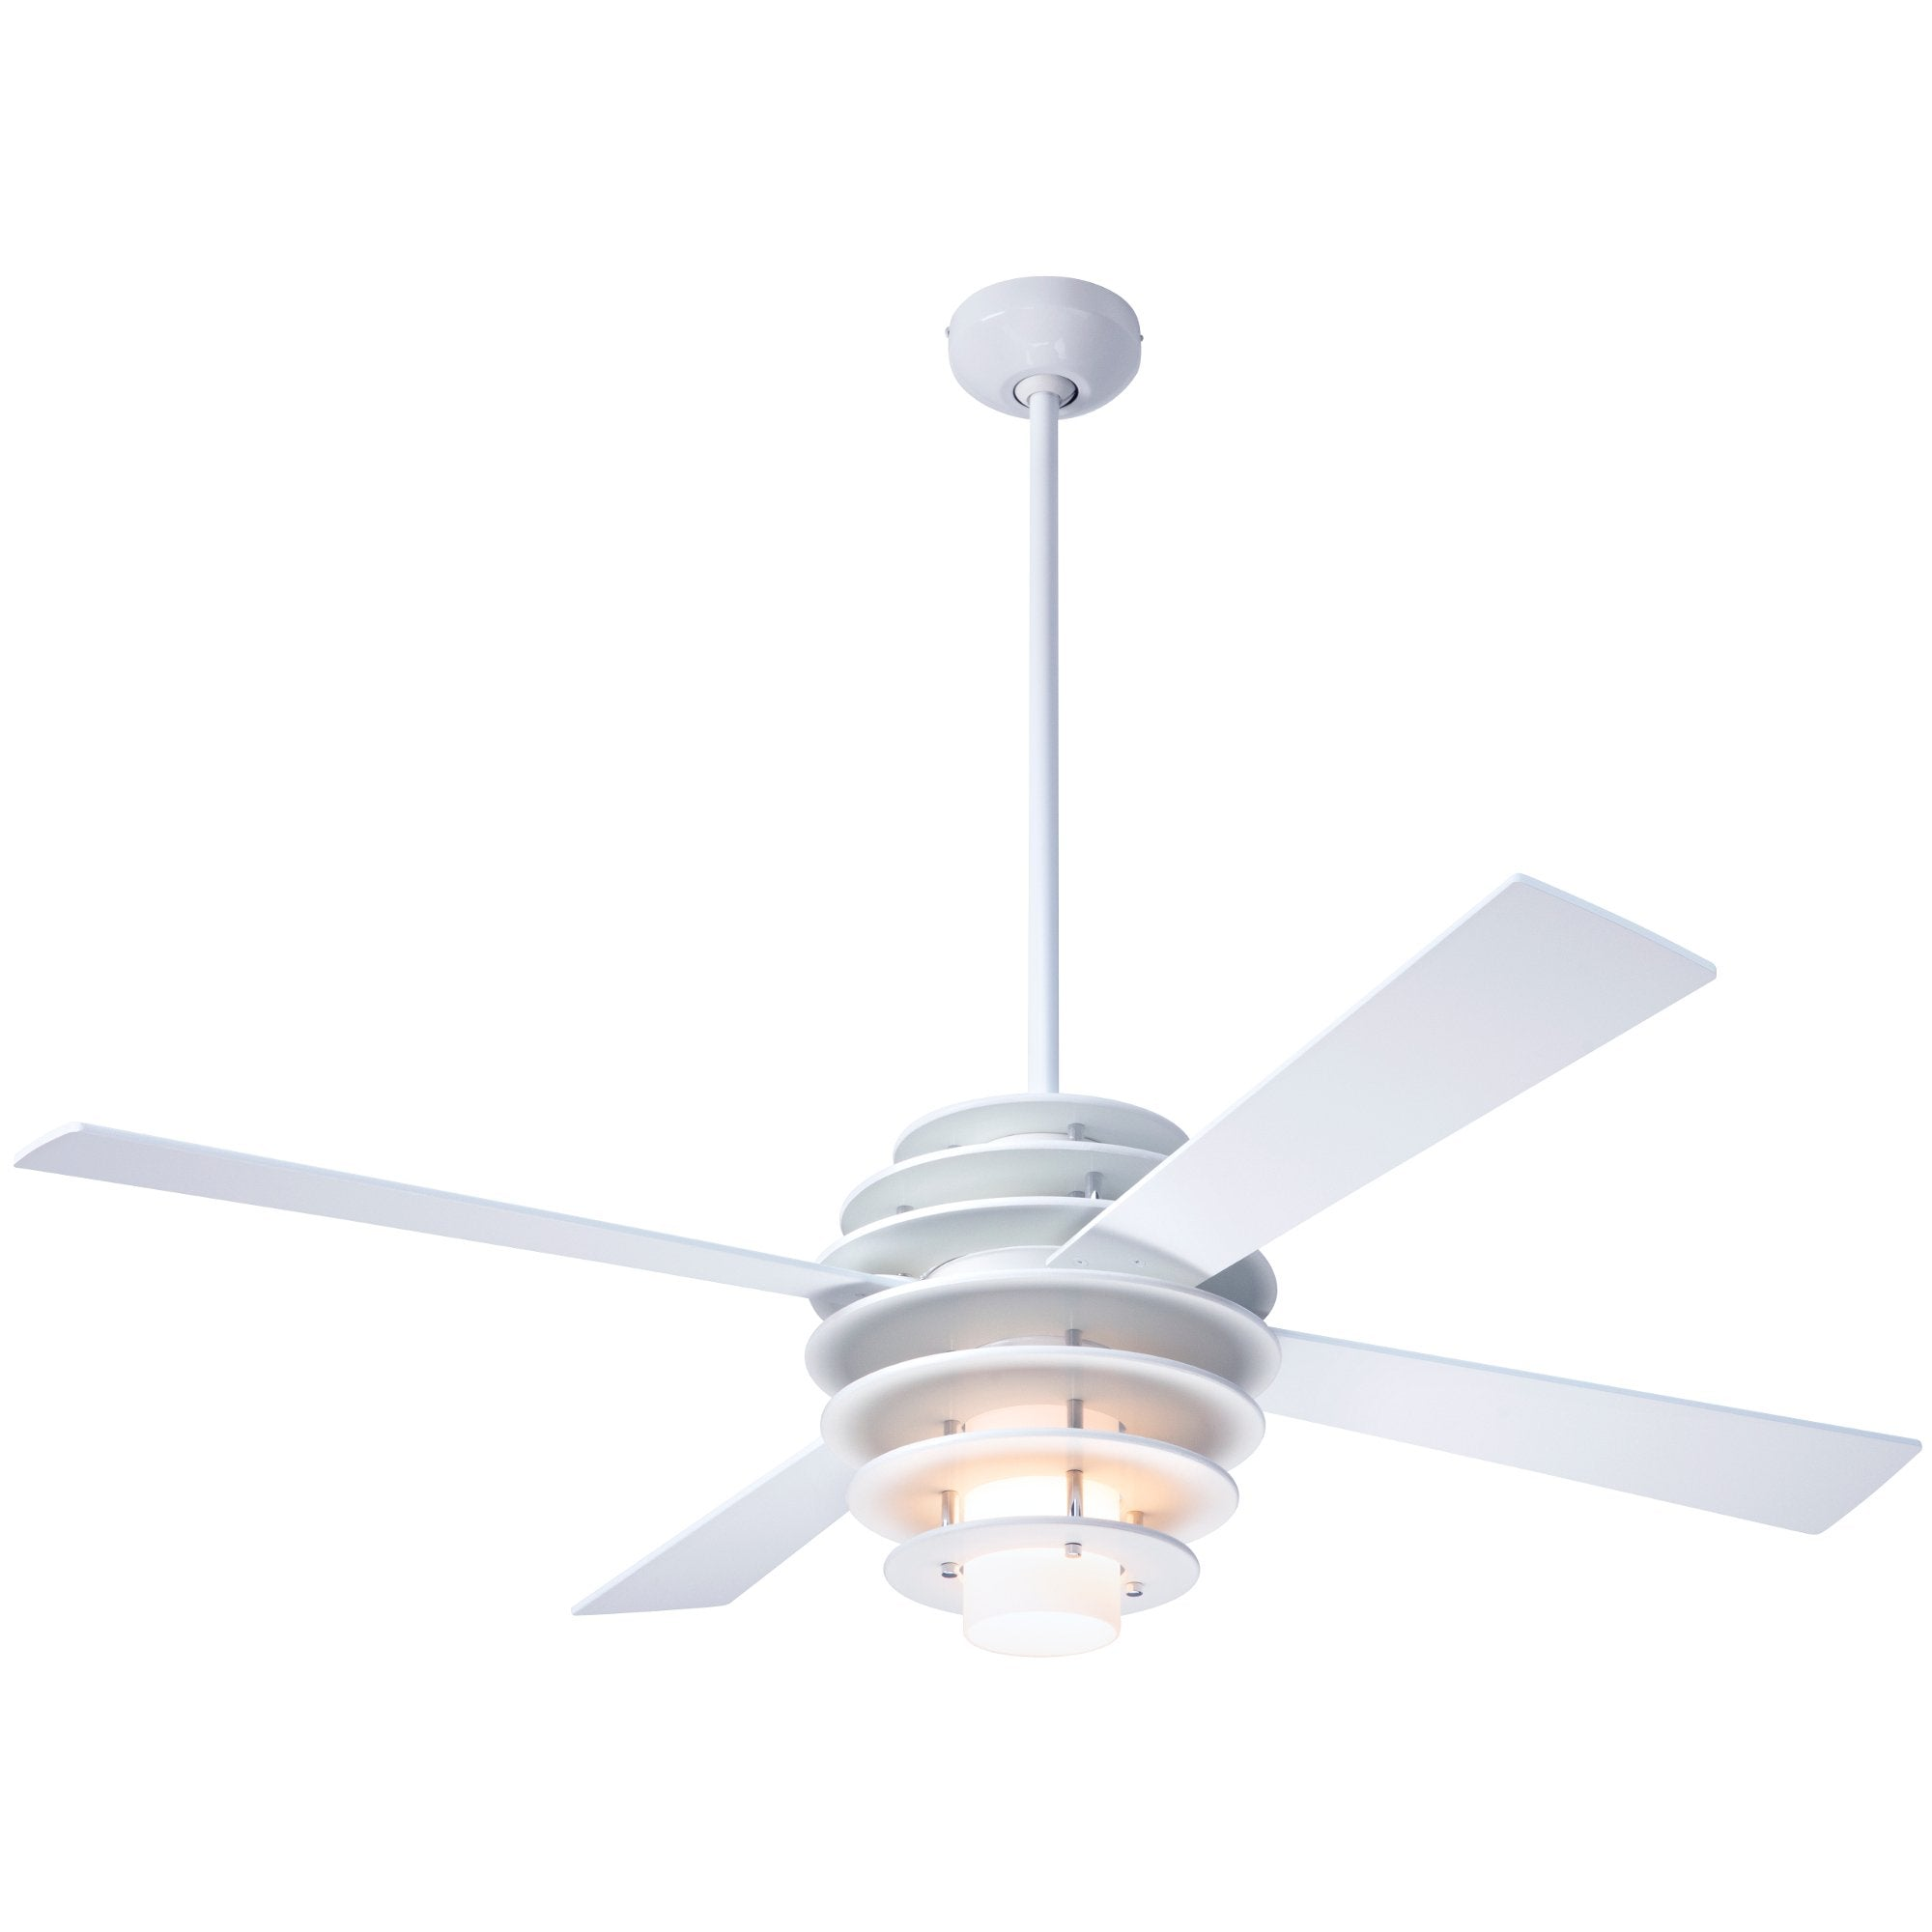 ab09ea34203 Modern Fan Co. Stella Ceiling Fan - White Gloss White